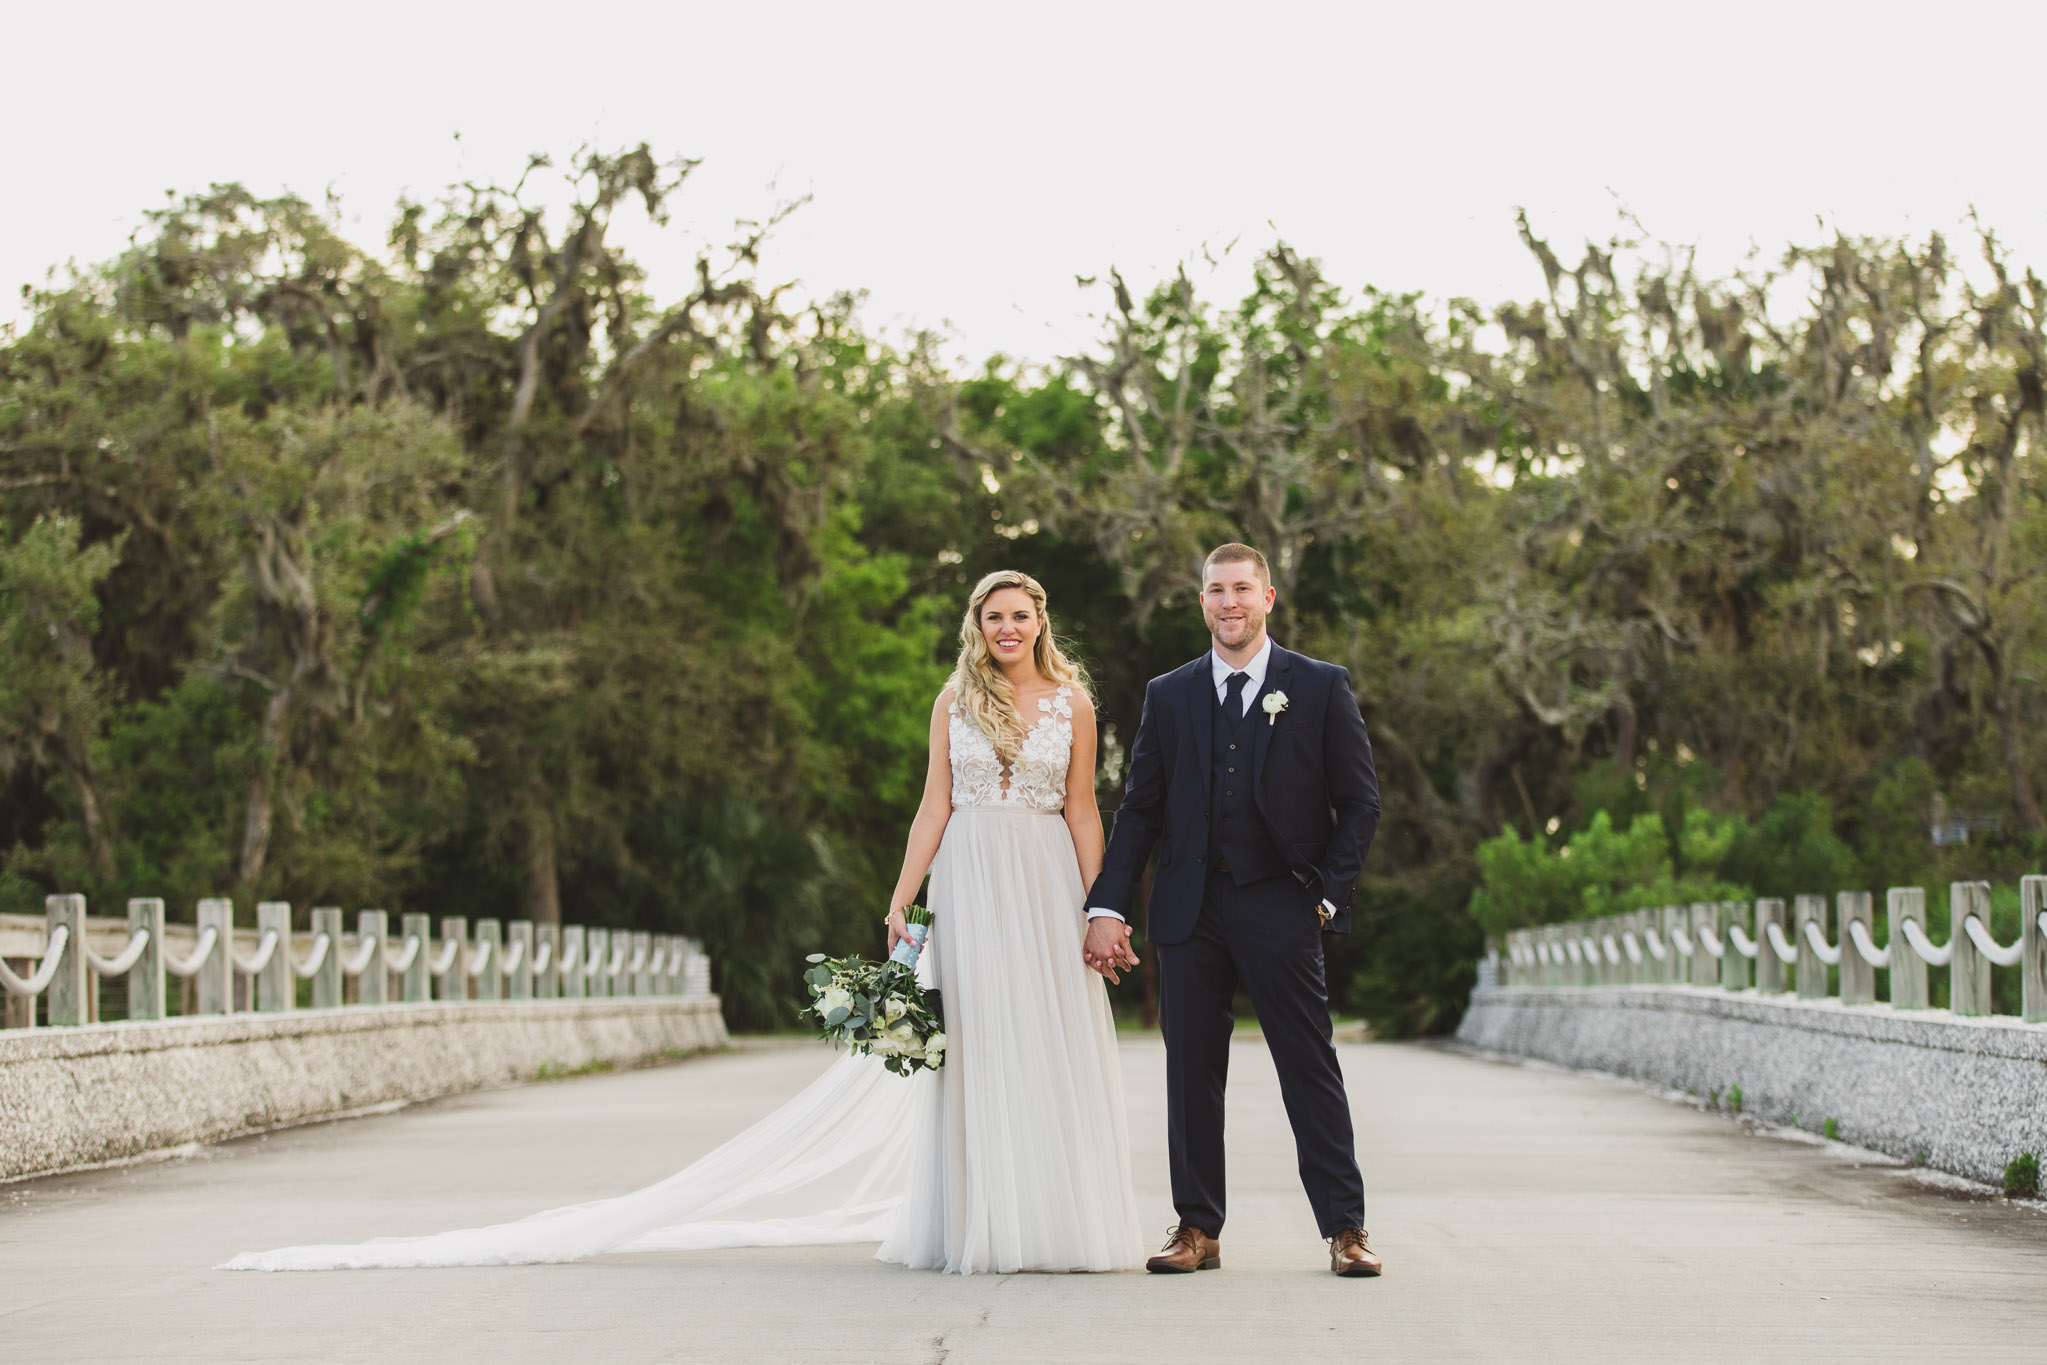 bride and groom standing in middle of road on bridge